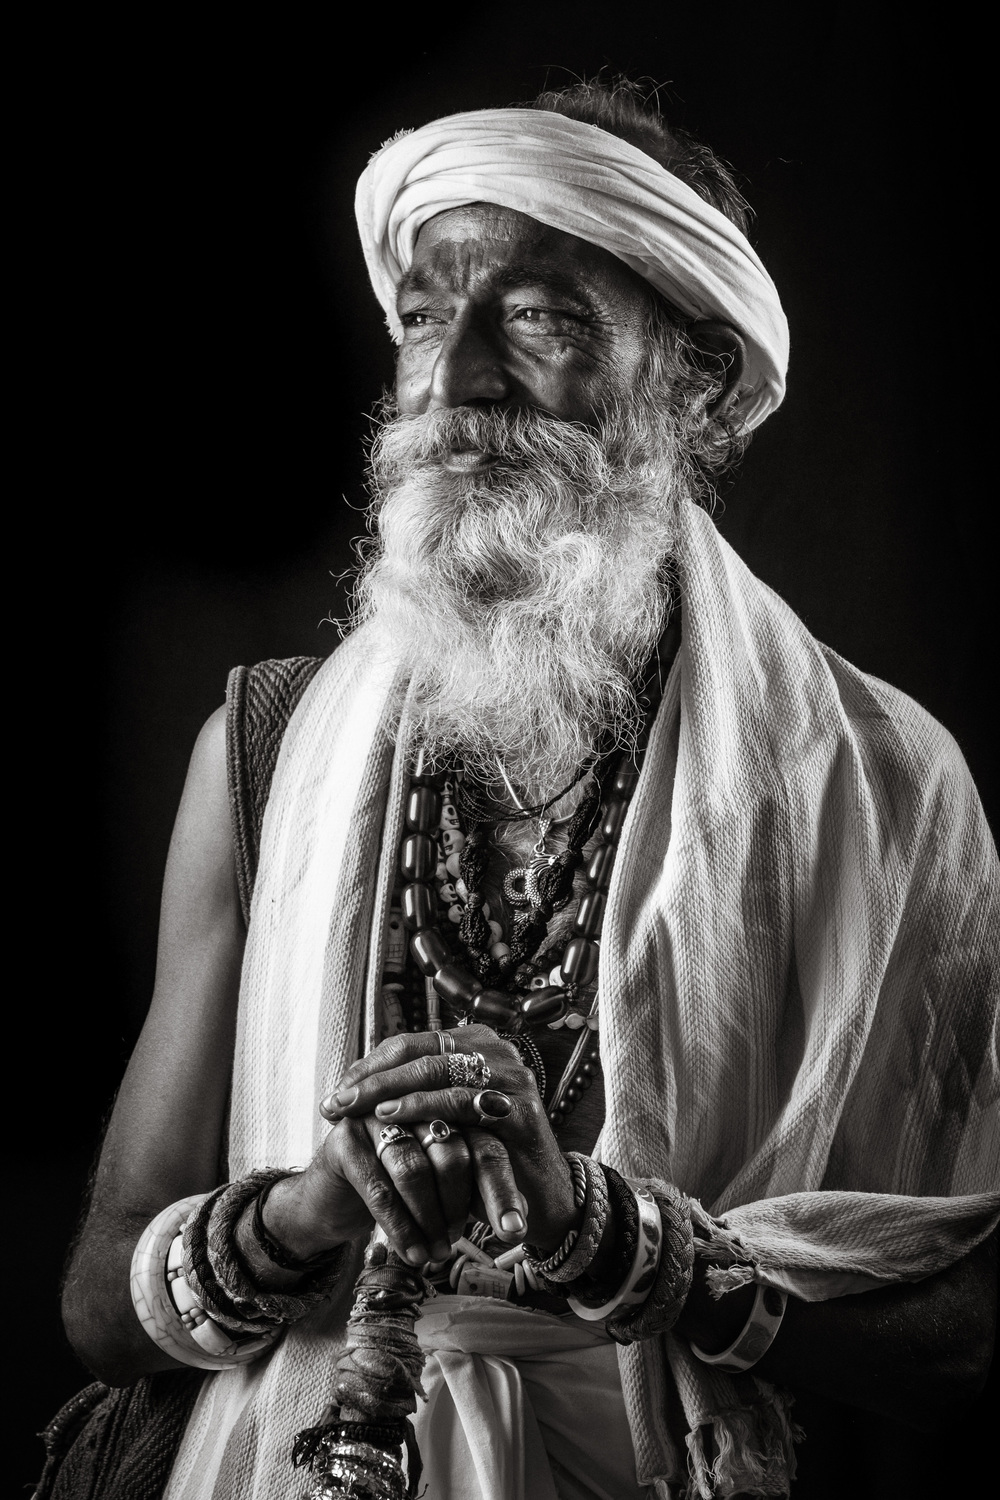 This Sadhu was lit by an SMDV Alpha 110 Softbox with a Bowens mount (available in Europe through this reseller), attached to my Jinbei HD 600. The rim light was created by a Cactus RF60, fired through a gridded SMDV 70 Speedbox. FUJIFILM X-Pro2 | XF50-140mmF2.8 R LM OIS WR @ 129.2 mm | 1-250 sec at f - 8,0 | ISO 400